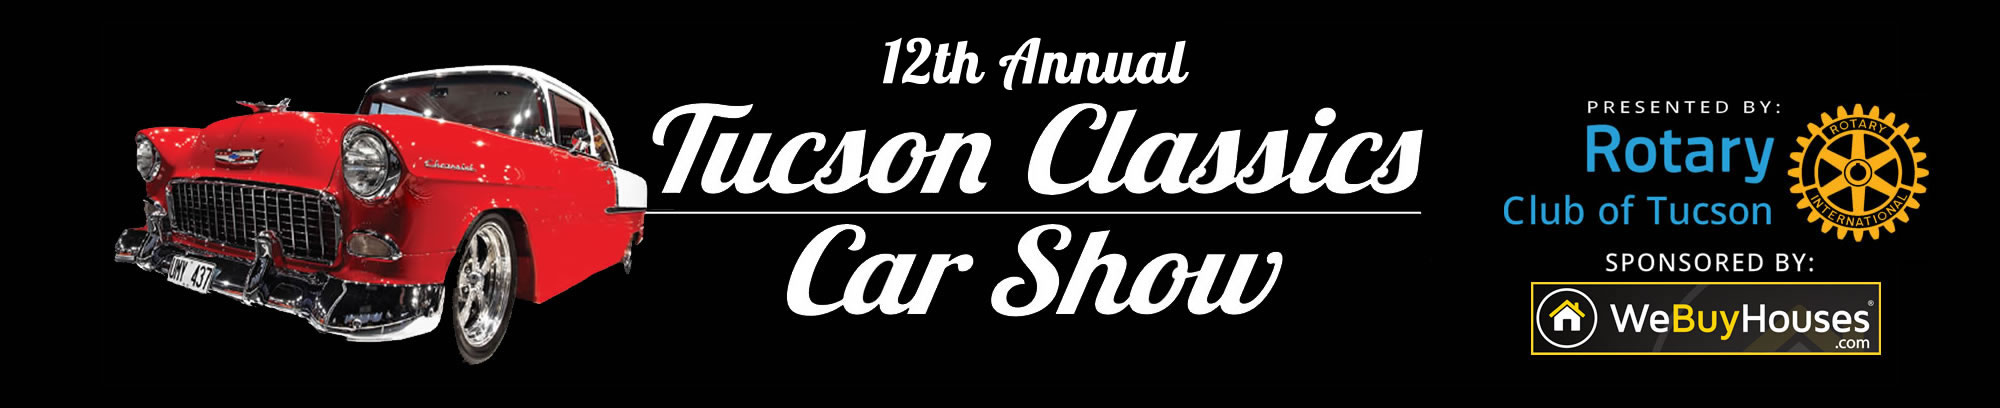 JobPath to Receive 5% Proceeds from Tucson Classics Car Show